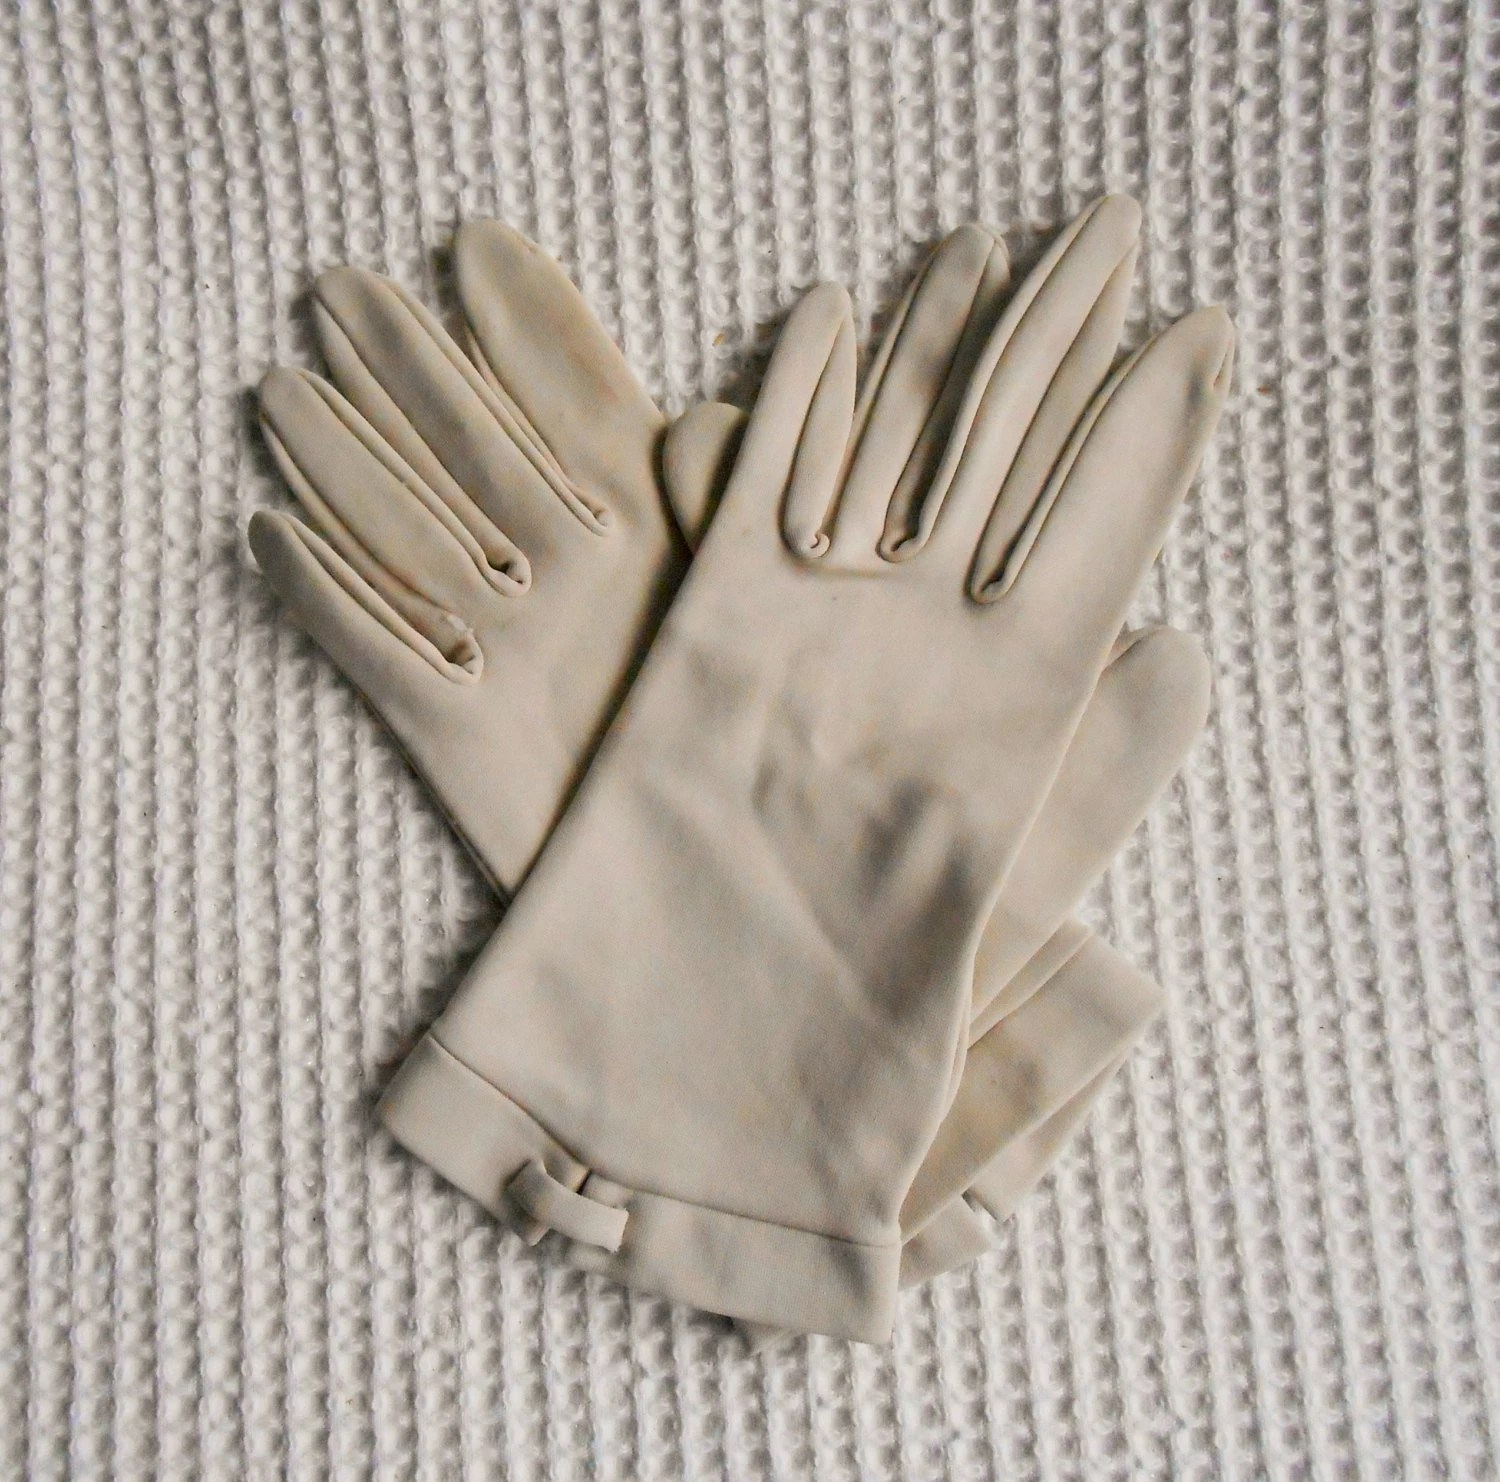 Find great deals on eBay for cream leather gloves. Shop with confidence.